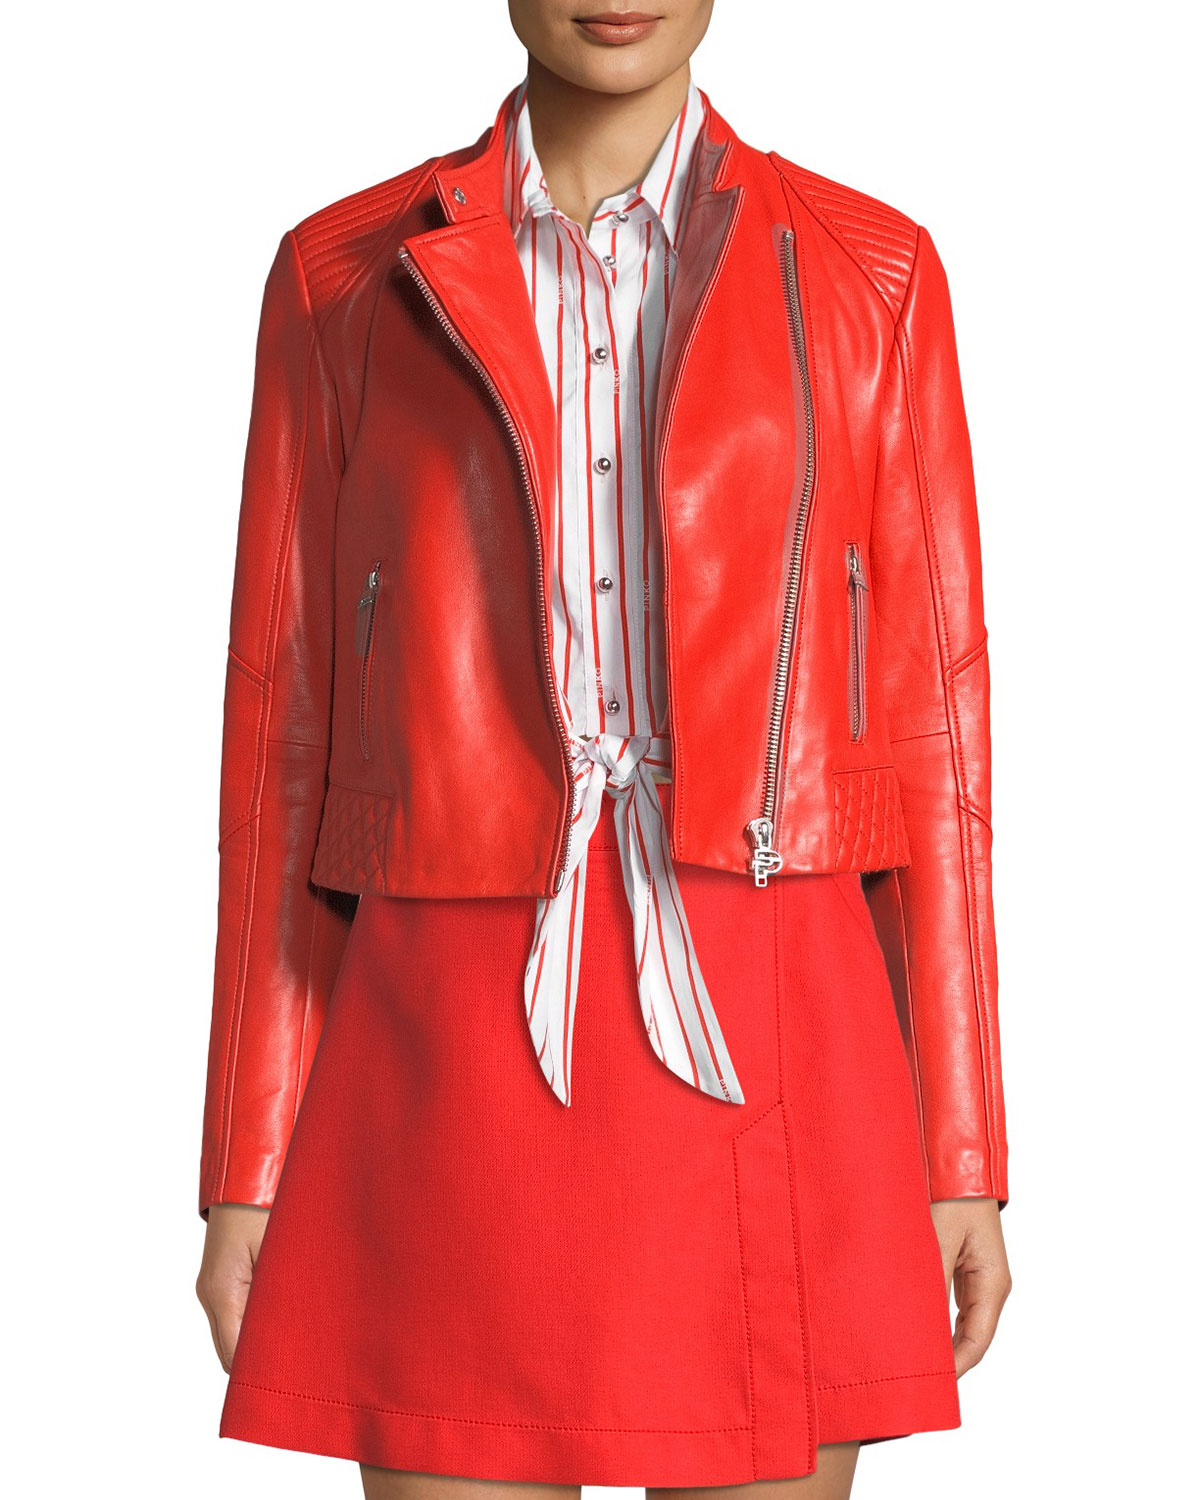 PINKO Cropped Leather Biker Jacket in Red